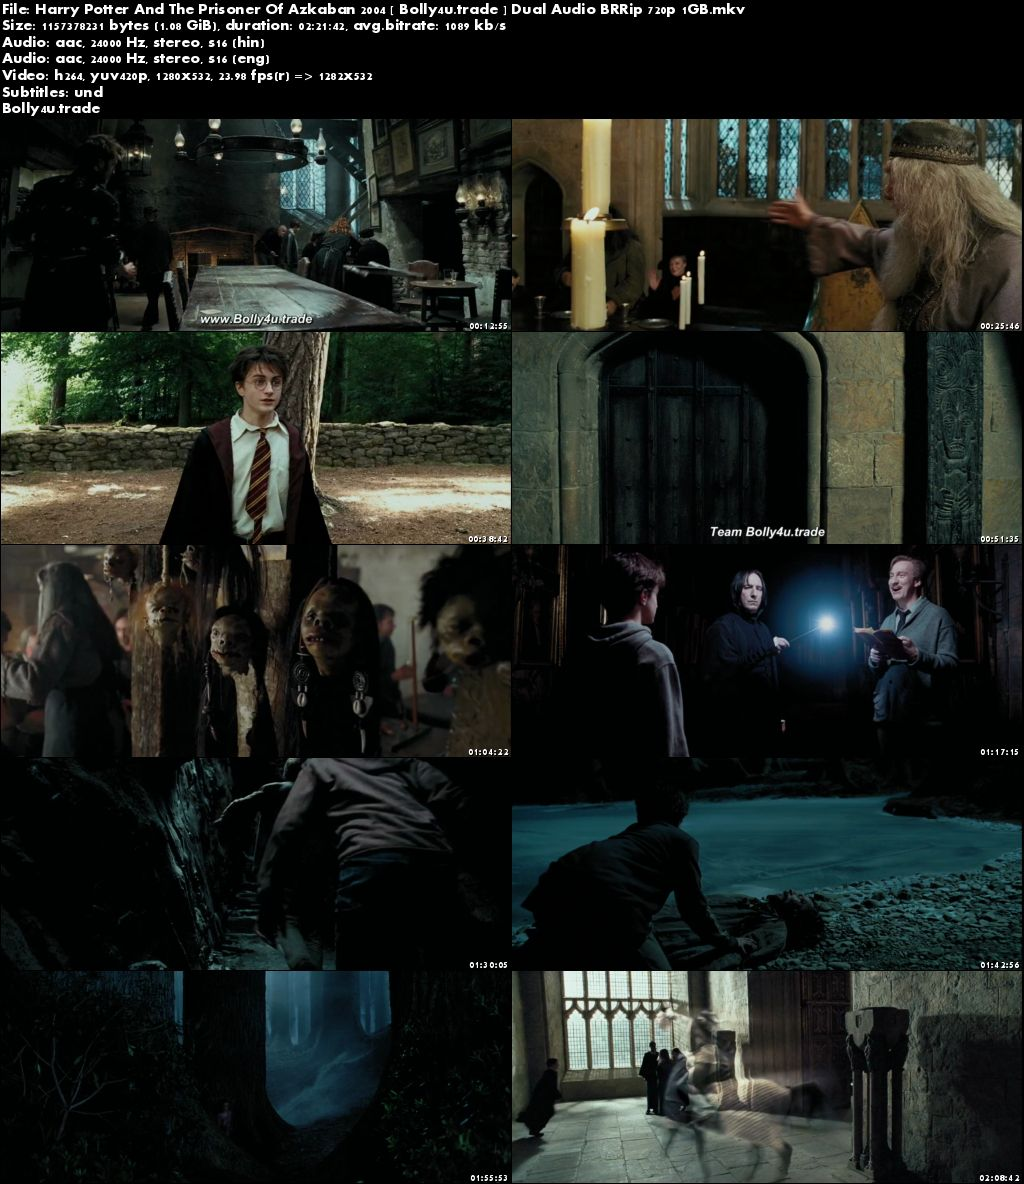 Harry Potter And The Prisoner Of Azkaban 2004 BRRip 450MB Hindi Dual Audio 480p Download